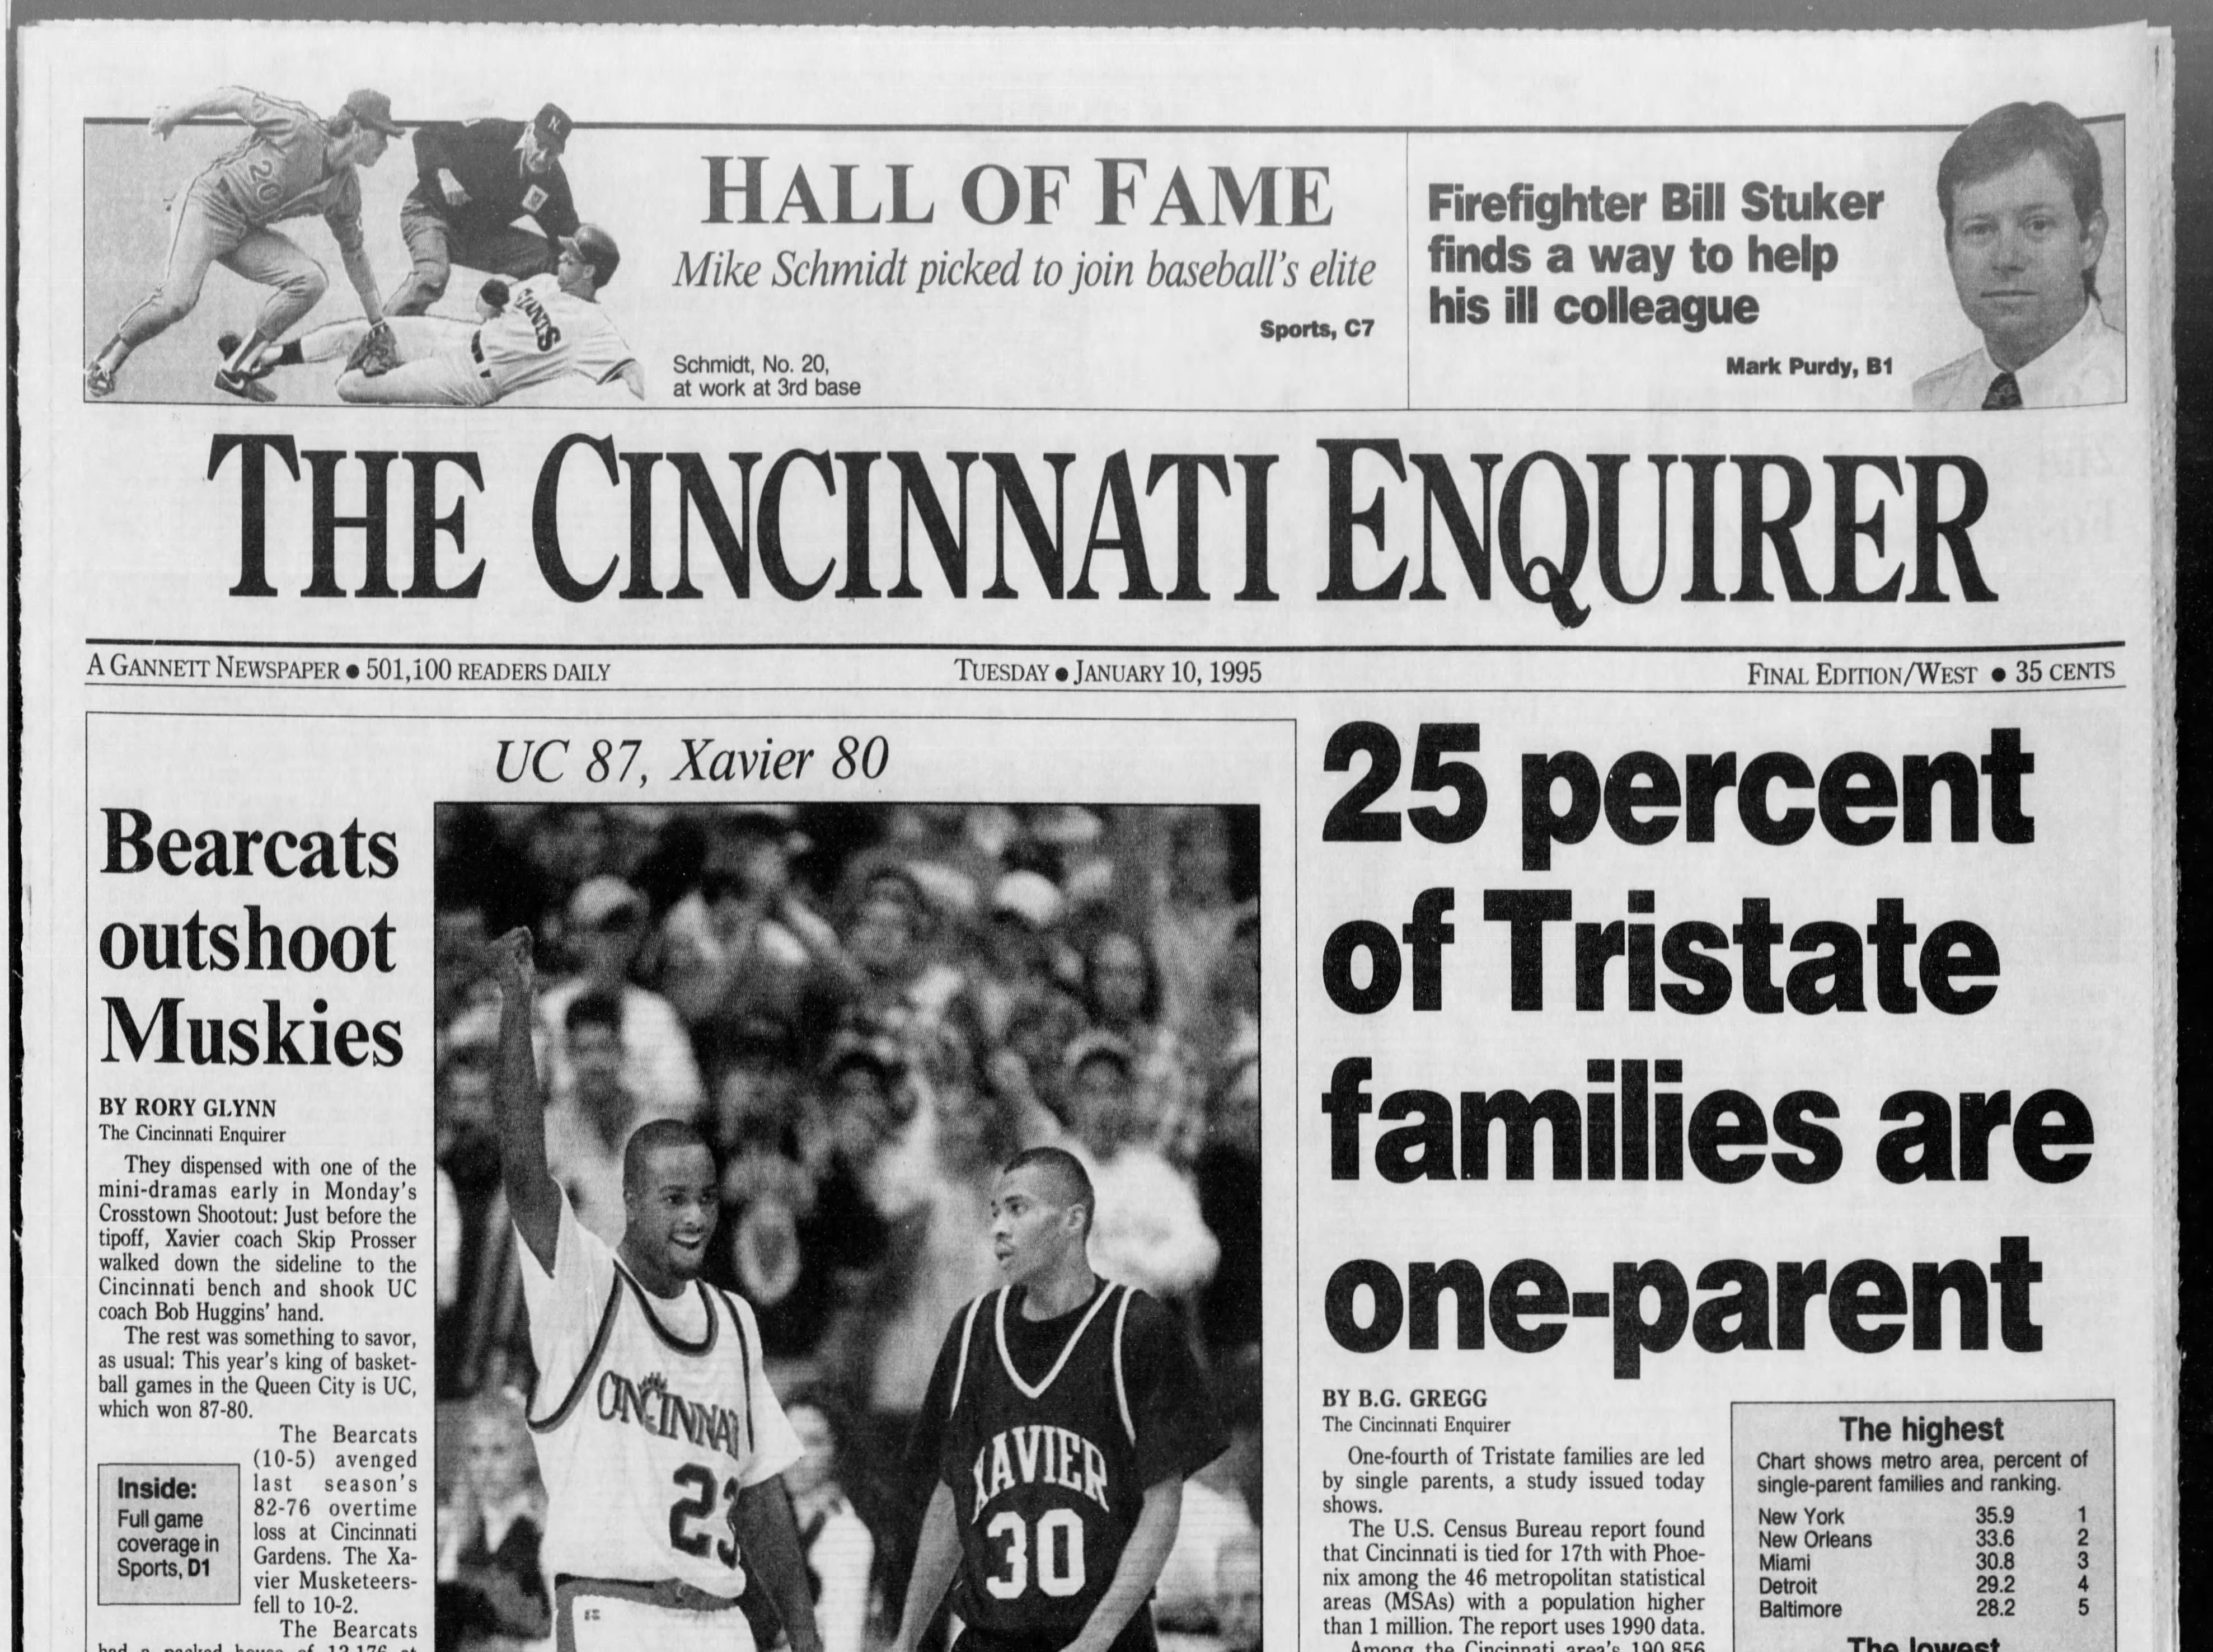 Skip Prosser's first game as Xavier head coach in the Crosstown Shootout ended in disappointment as UC beat the Musketeers in the 1994-95 version.